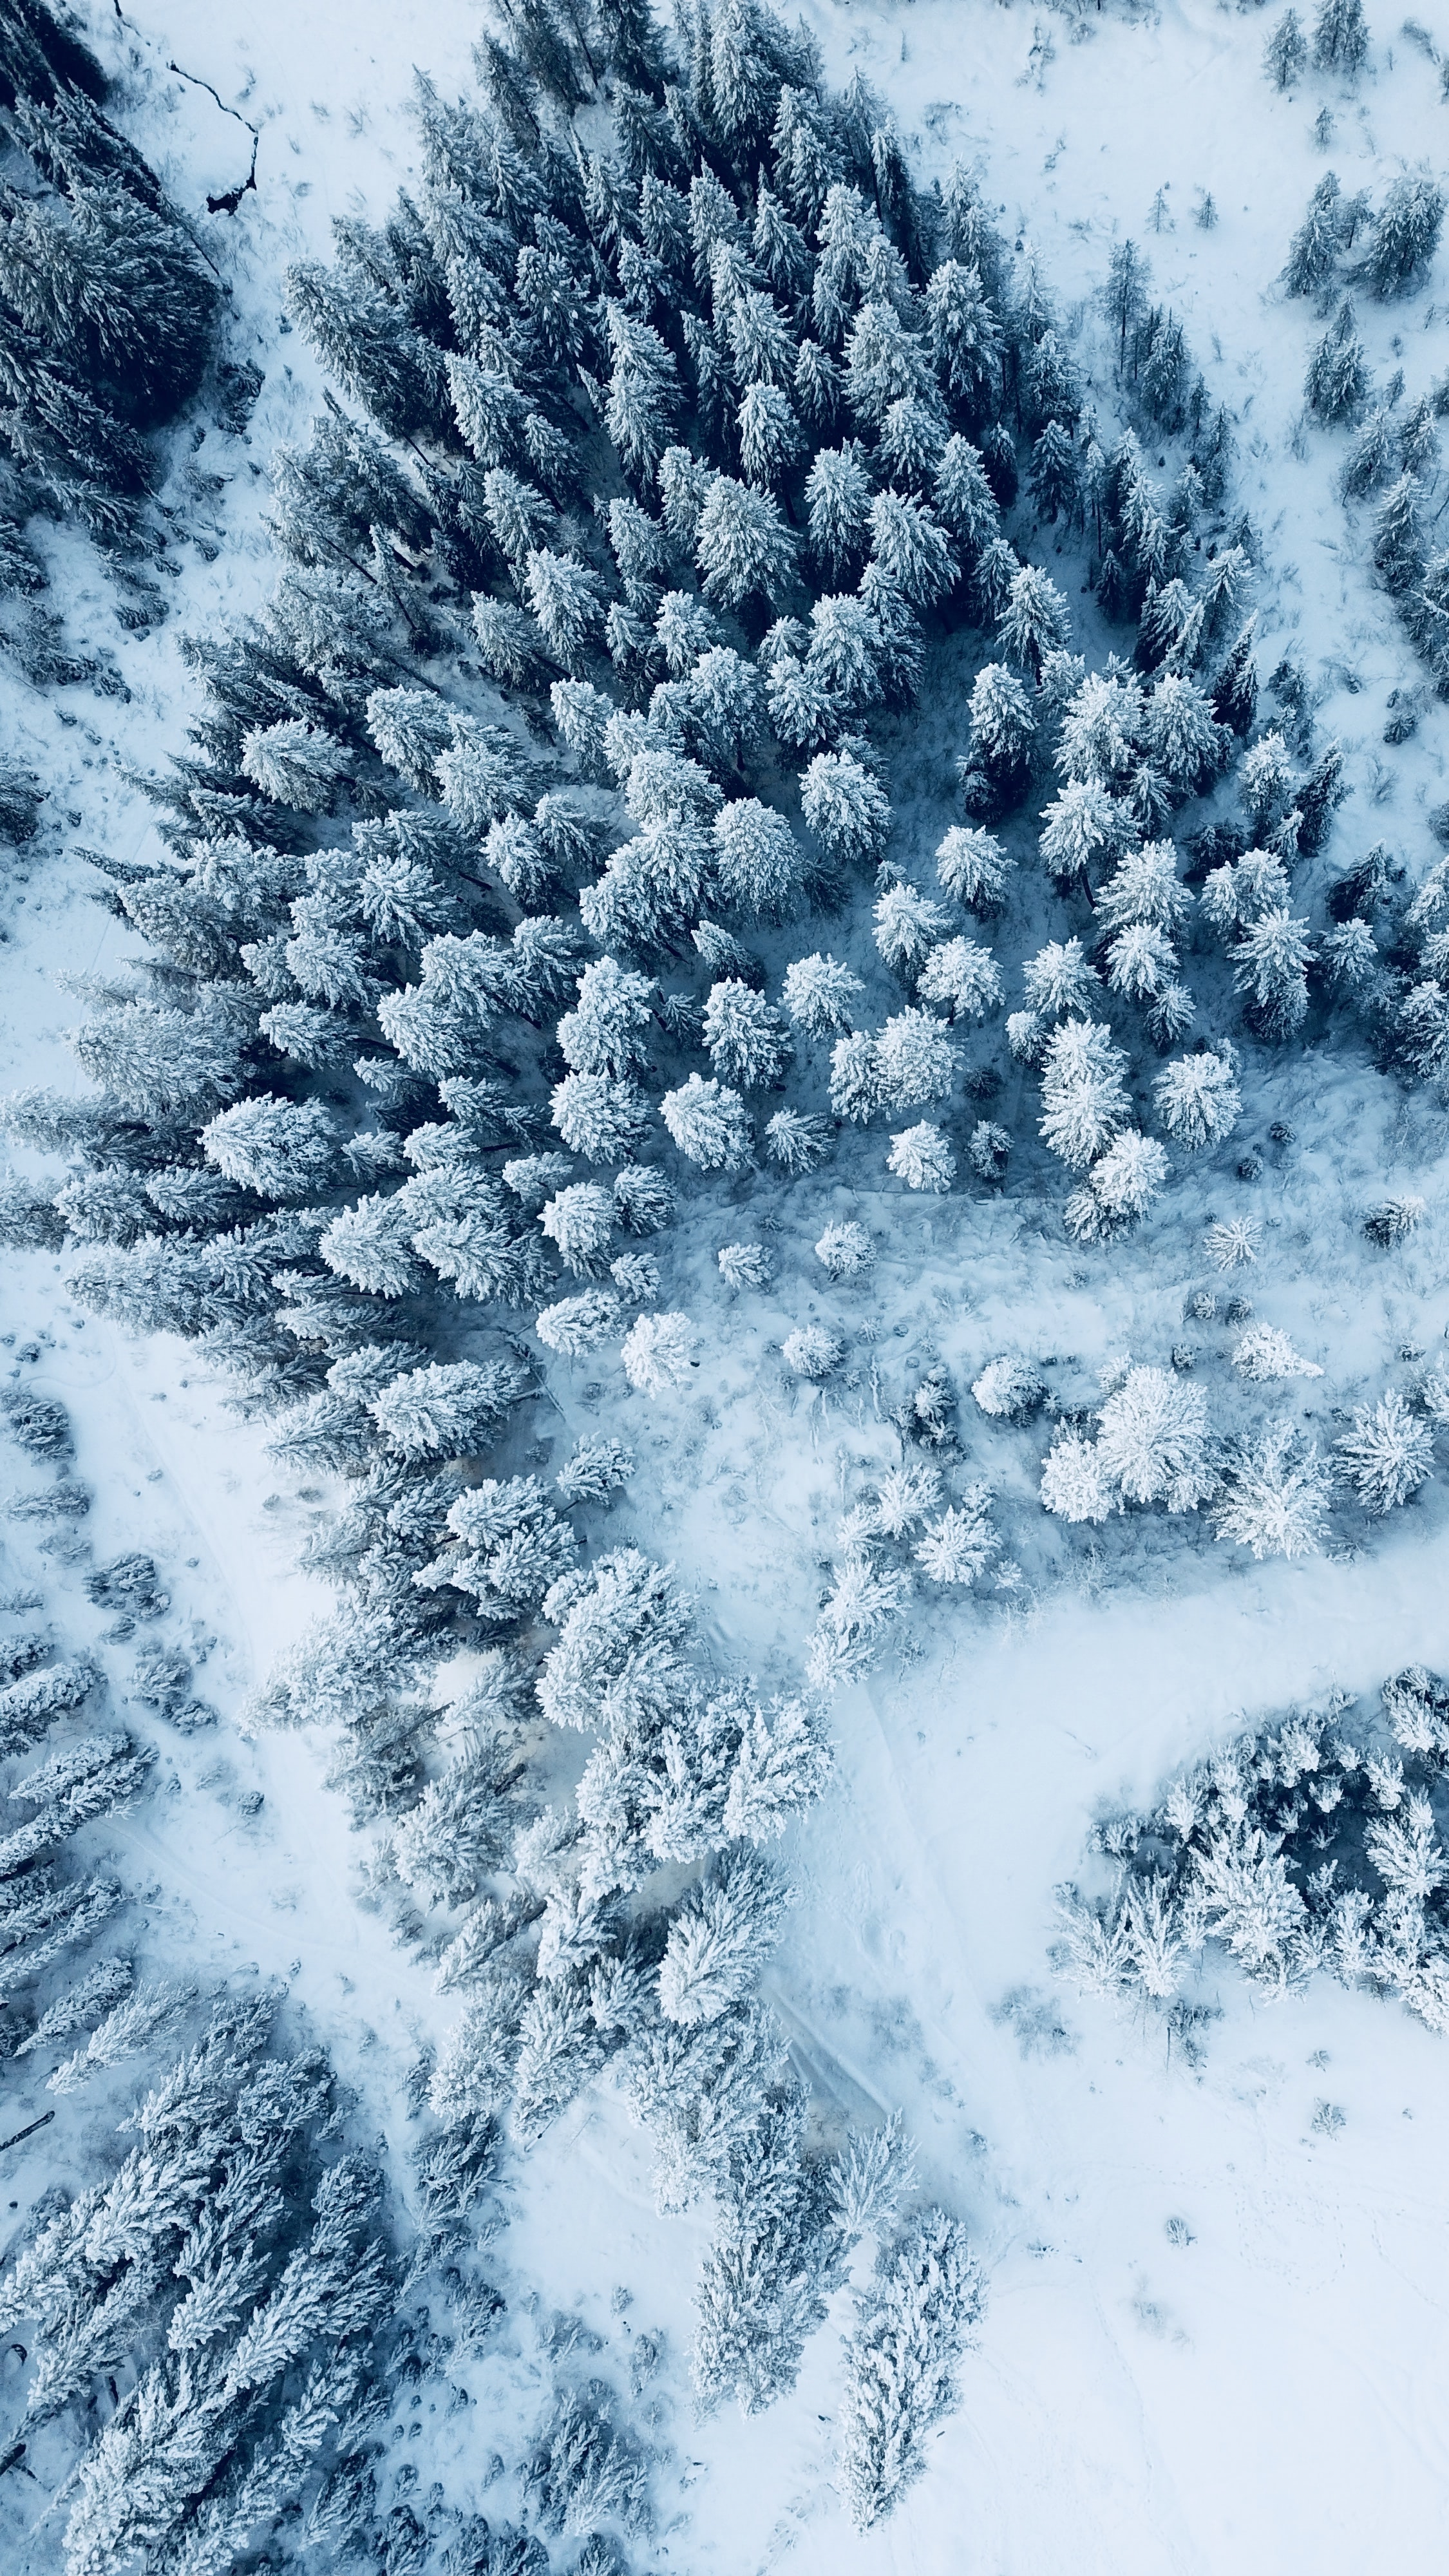 aerial photography of snow capped trees